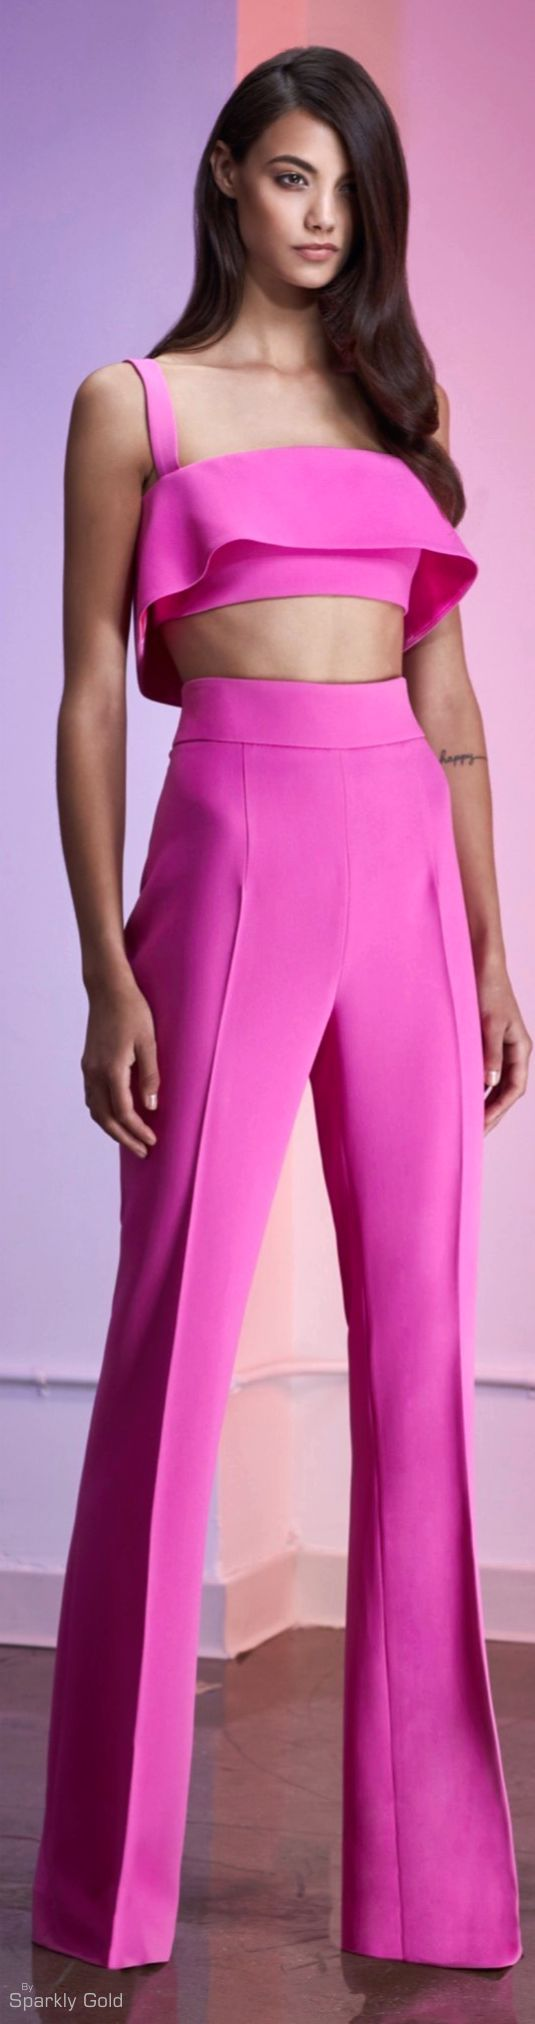 Cushnie et Ochs Resort 2016 pink jumpsuit women fashion outfit clothing style apparel @roressclothes closet ideas